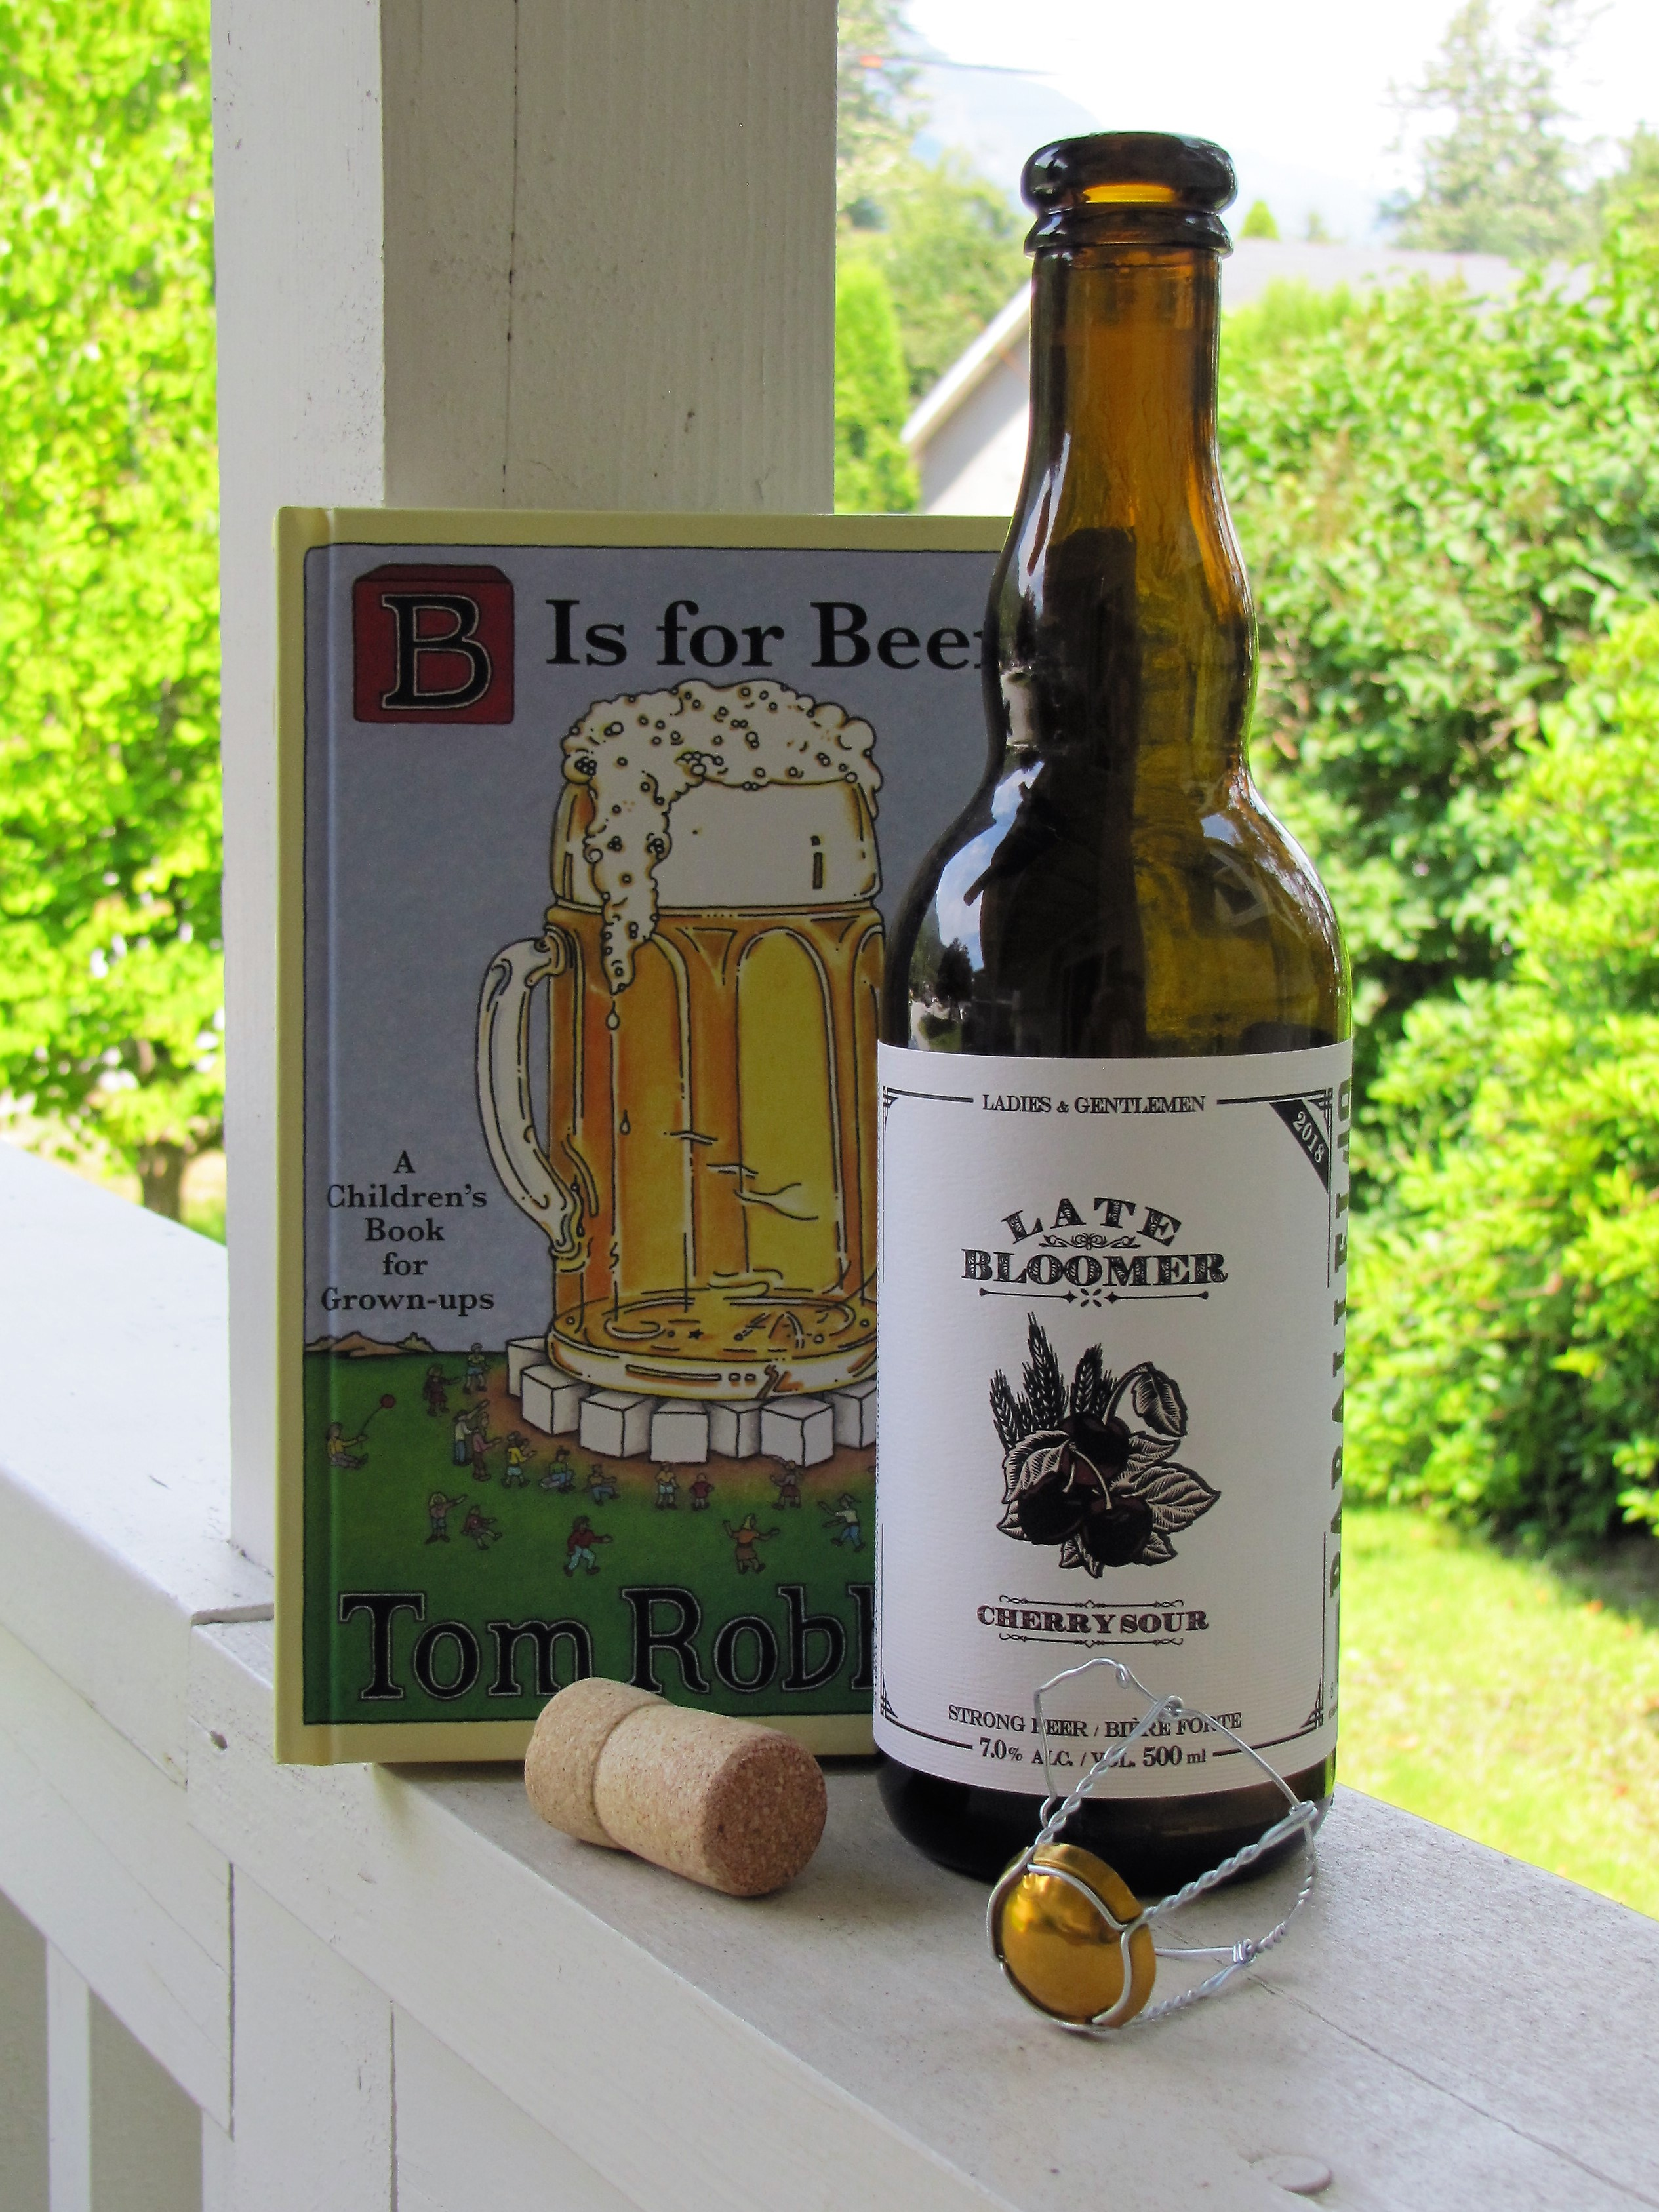 B is for Books, Beer and Bloomer